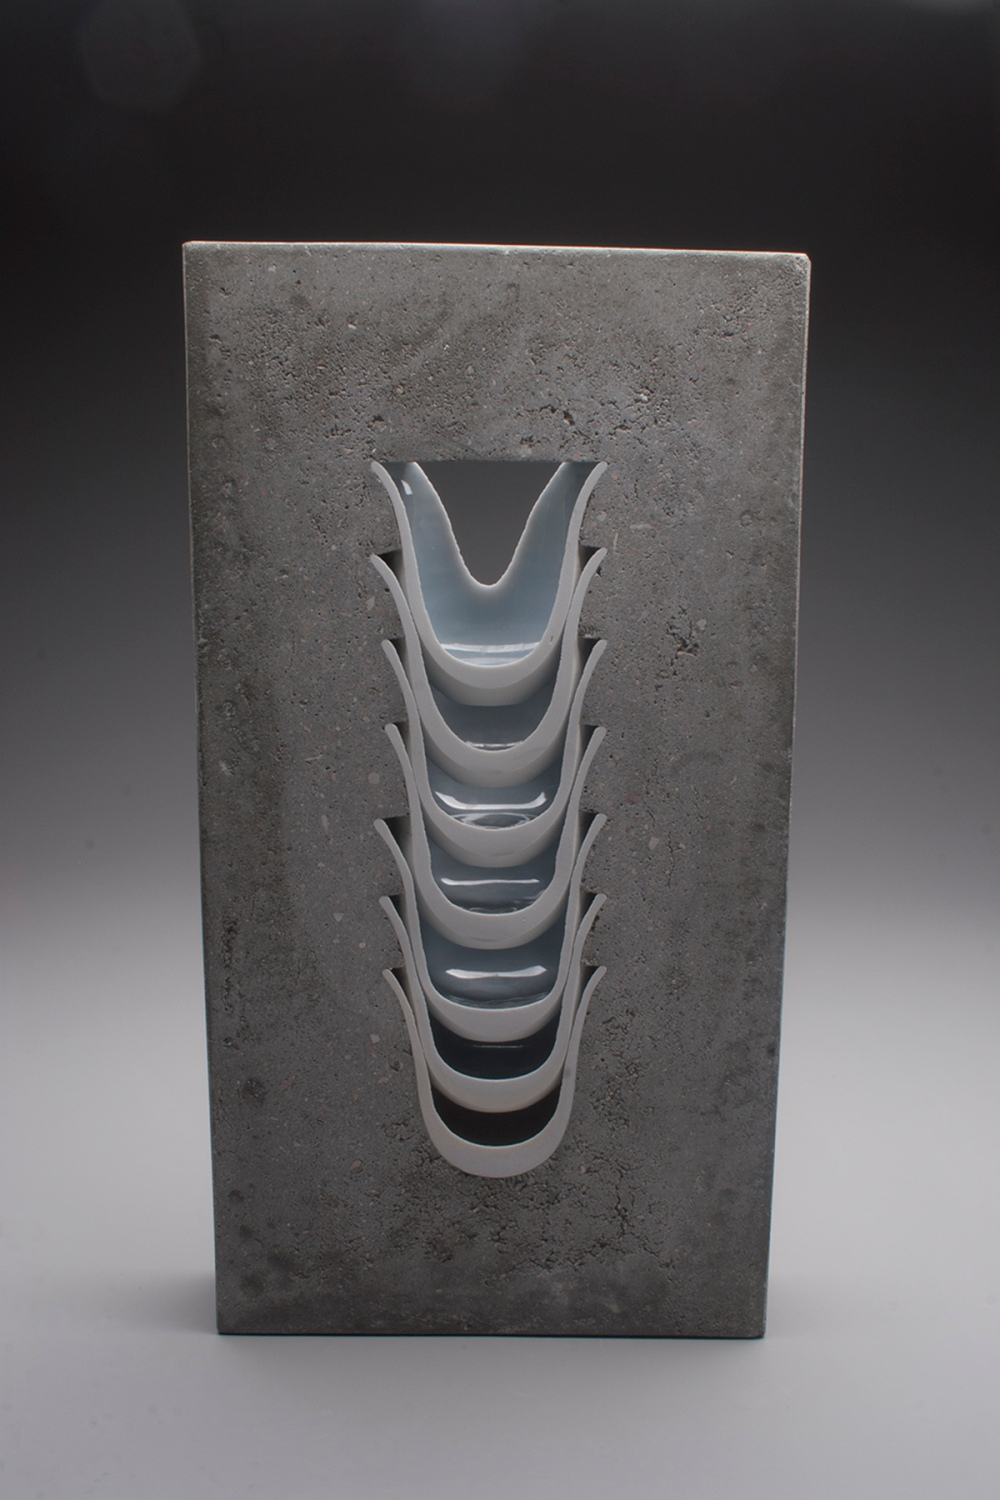 Thomas Edwards concrete and ceramics sculpture Ridge Ceramics Top 40